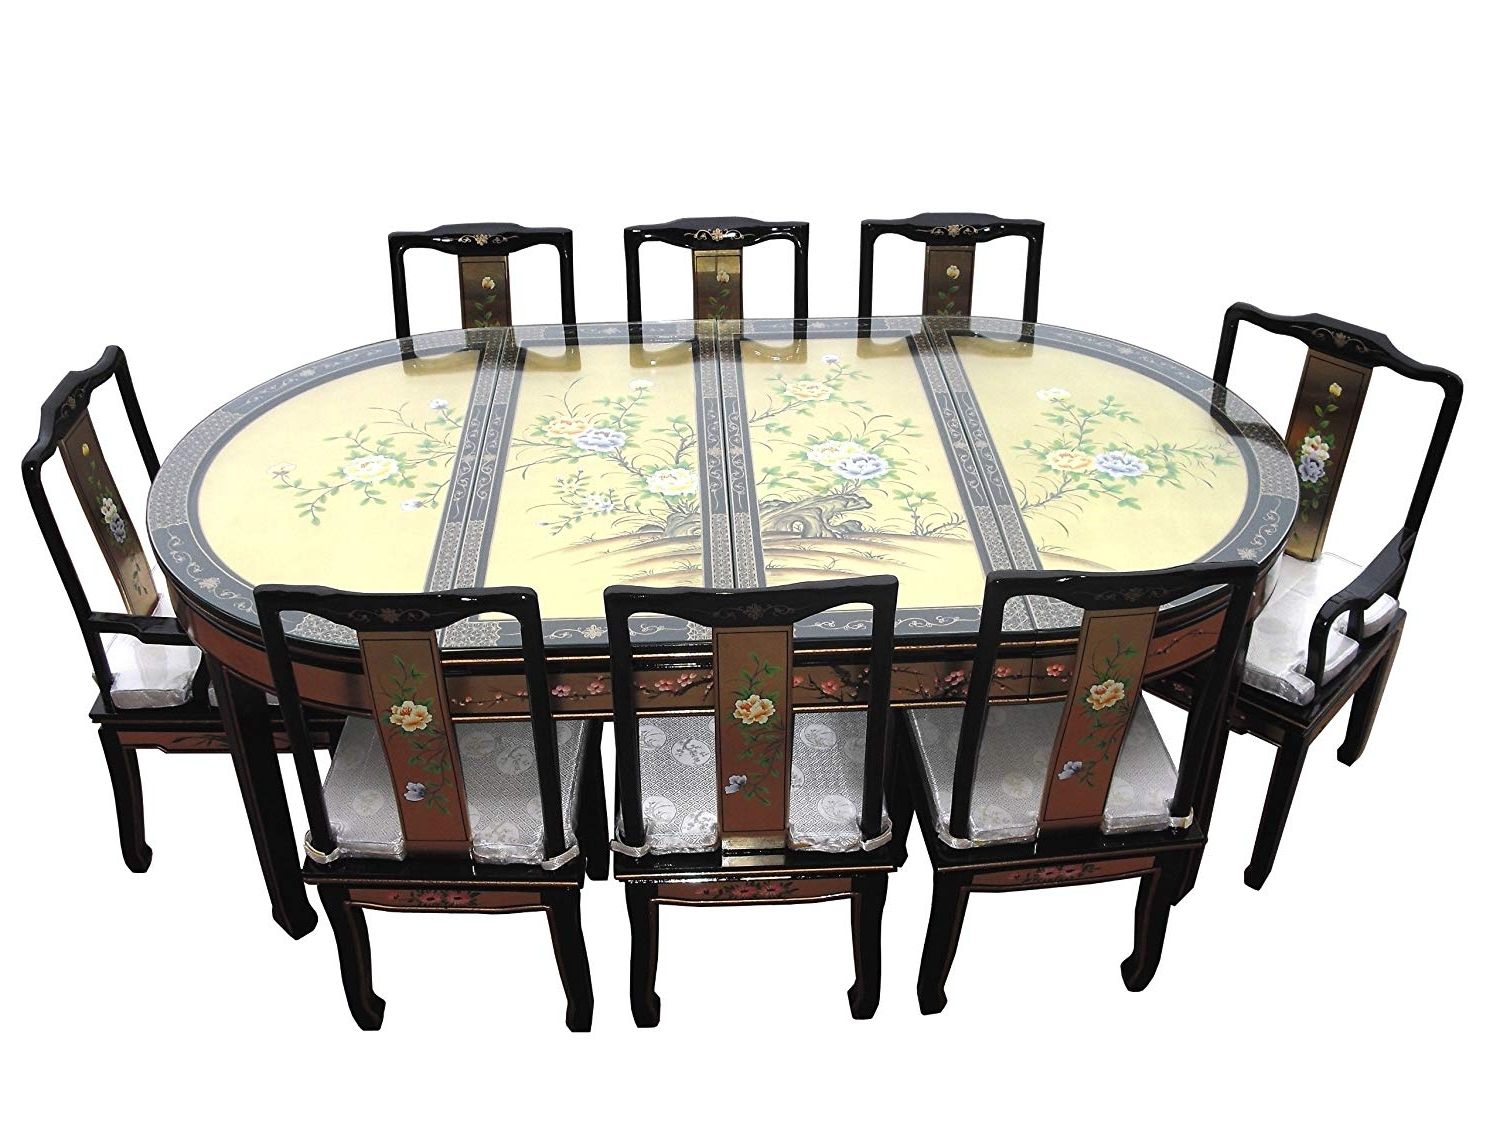 Newest Dining Tables Set For 8 Inside Chinese Oriental Furniture, Genuine Gold Leaf 8 Seater Dining Table (View 18 of 25)